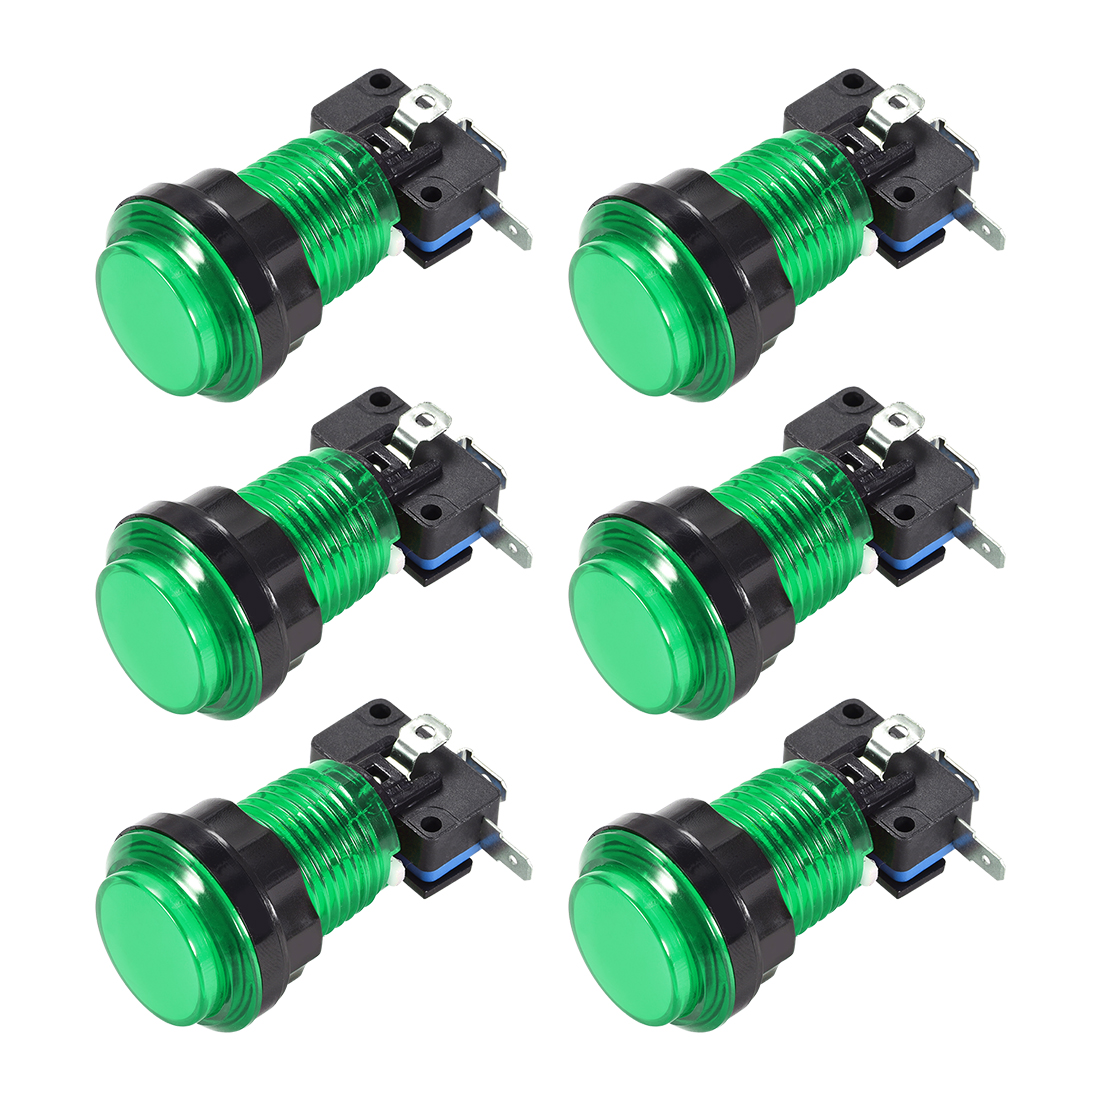 Game Push Button 33.5mm 12V LED Illuminated Switch with Micro switch Green 6pcs